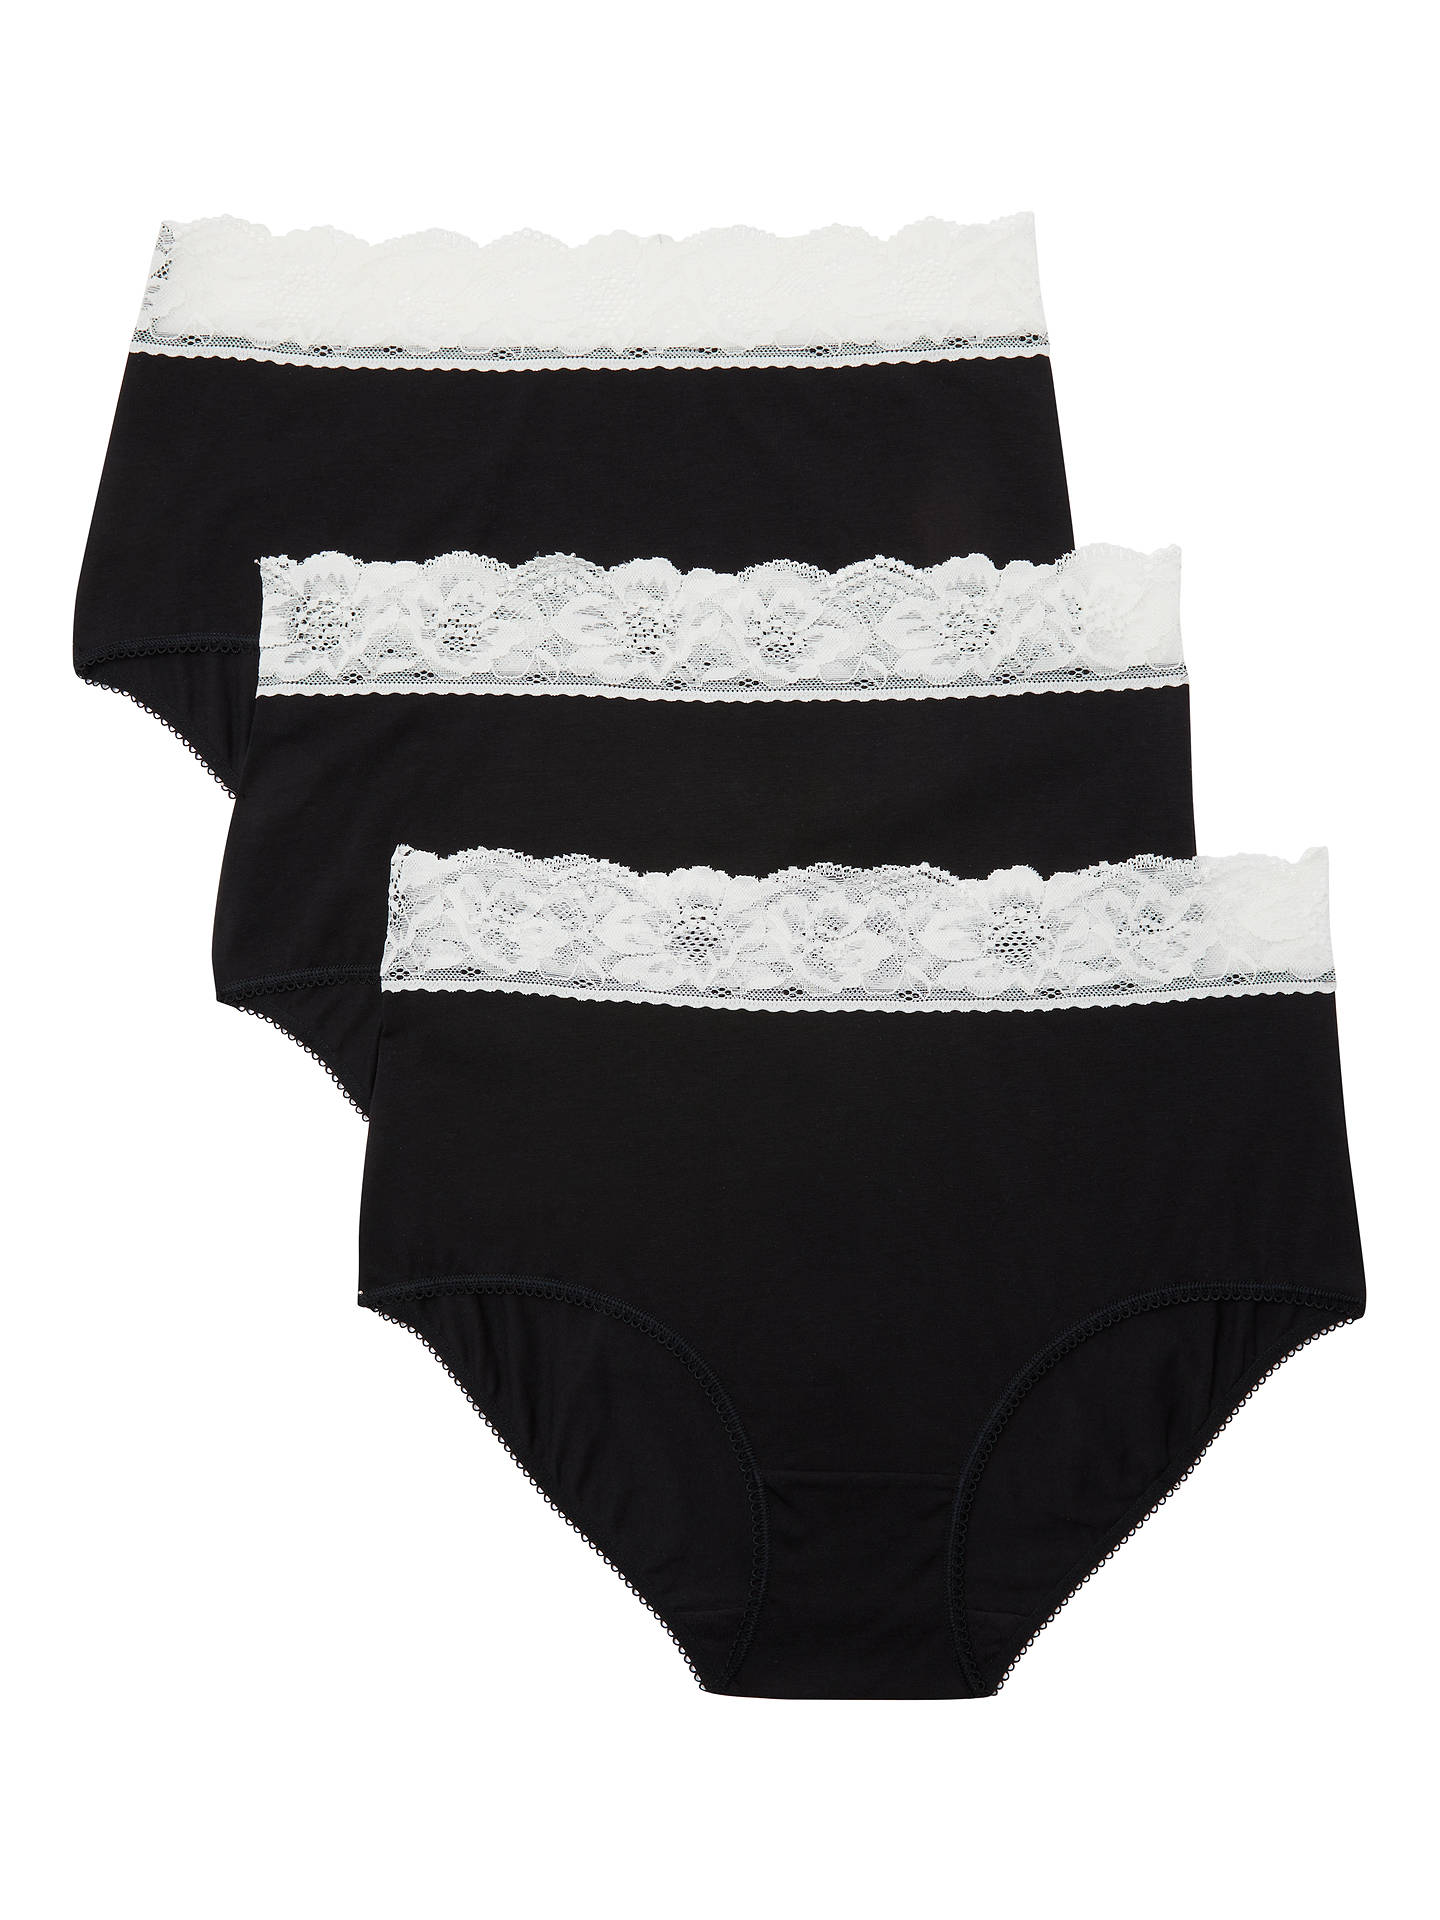 eb2985a7ca026 ... Buy John Lewis & Partners 3 Pack Lace Trim Full Briefs, Black/Cream,